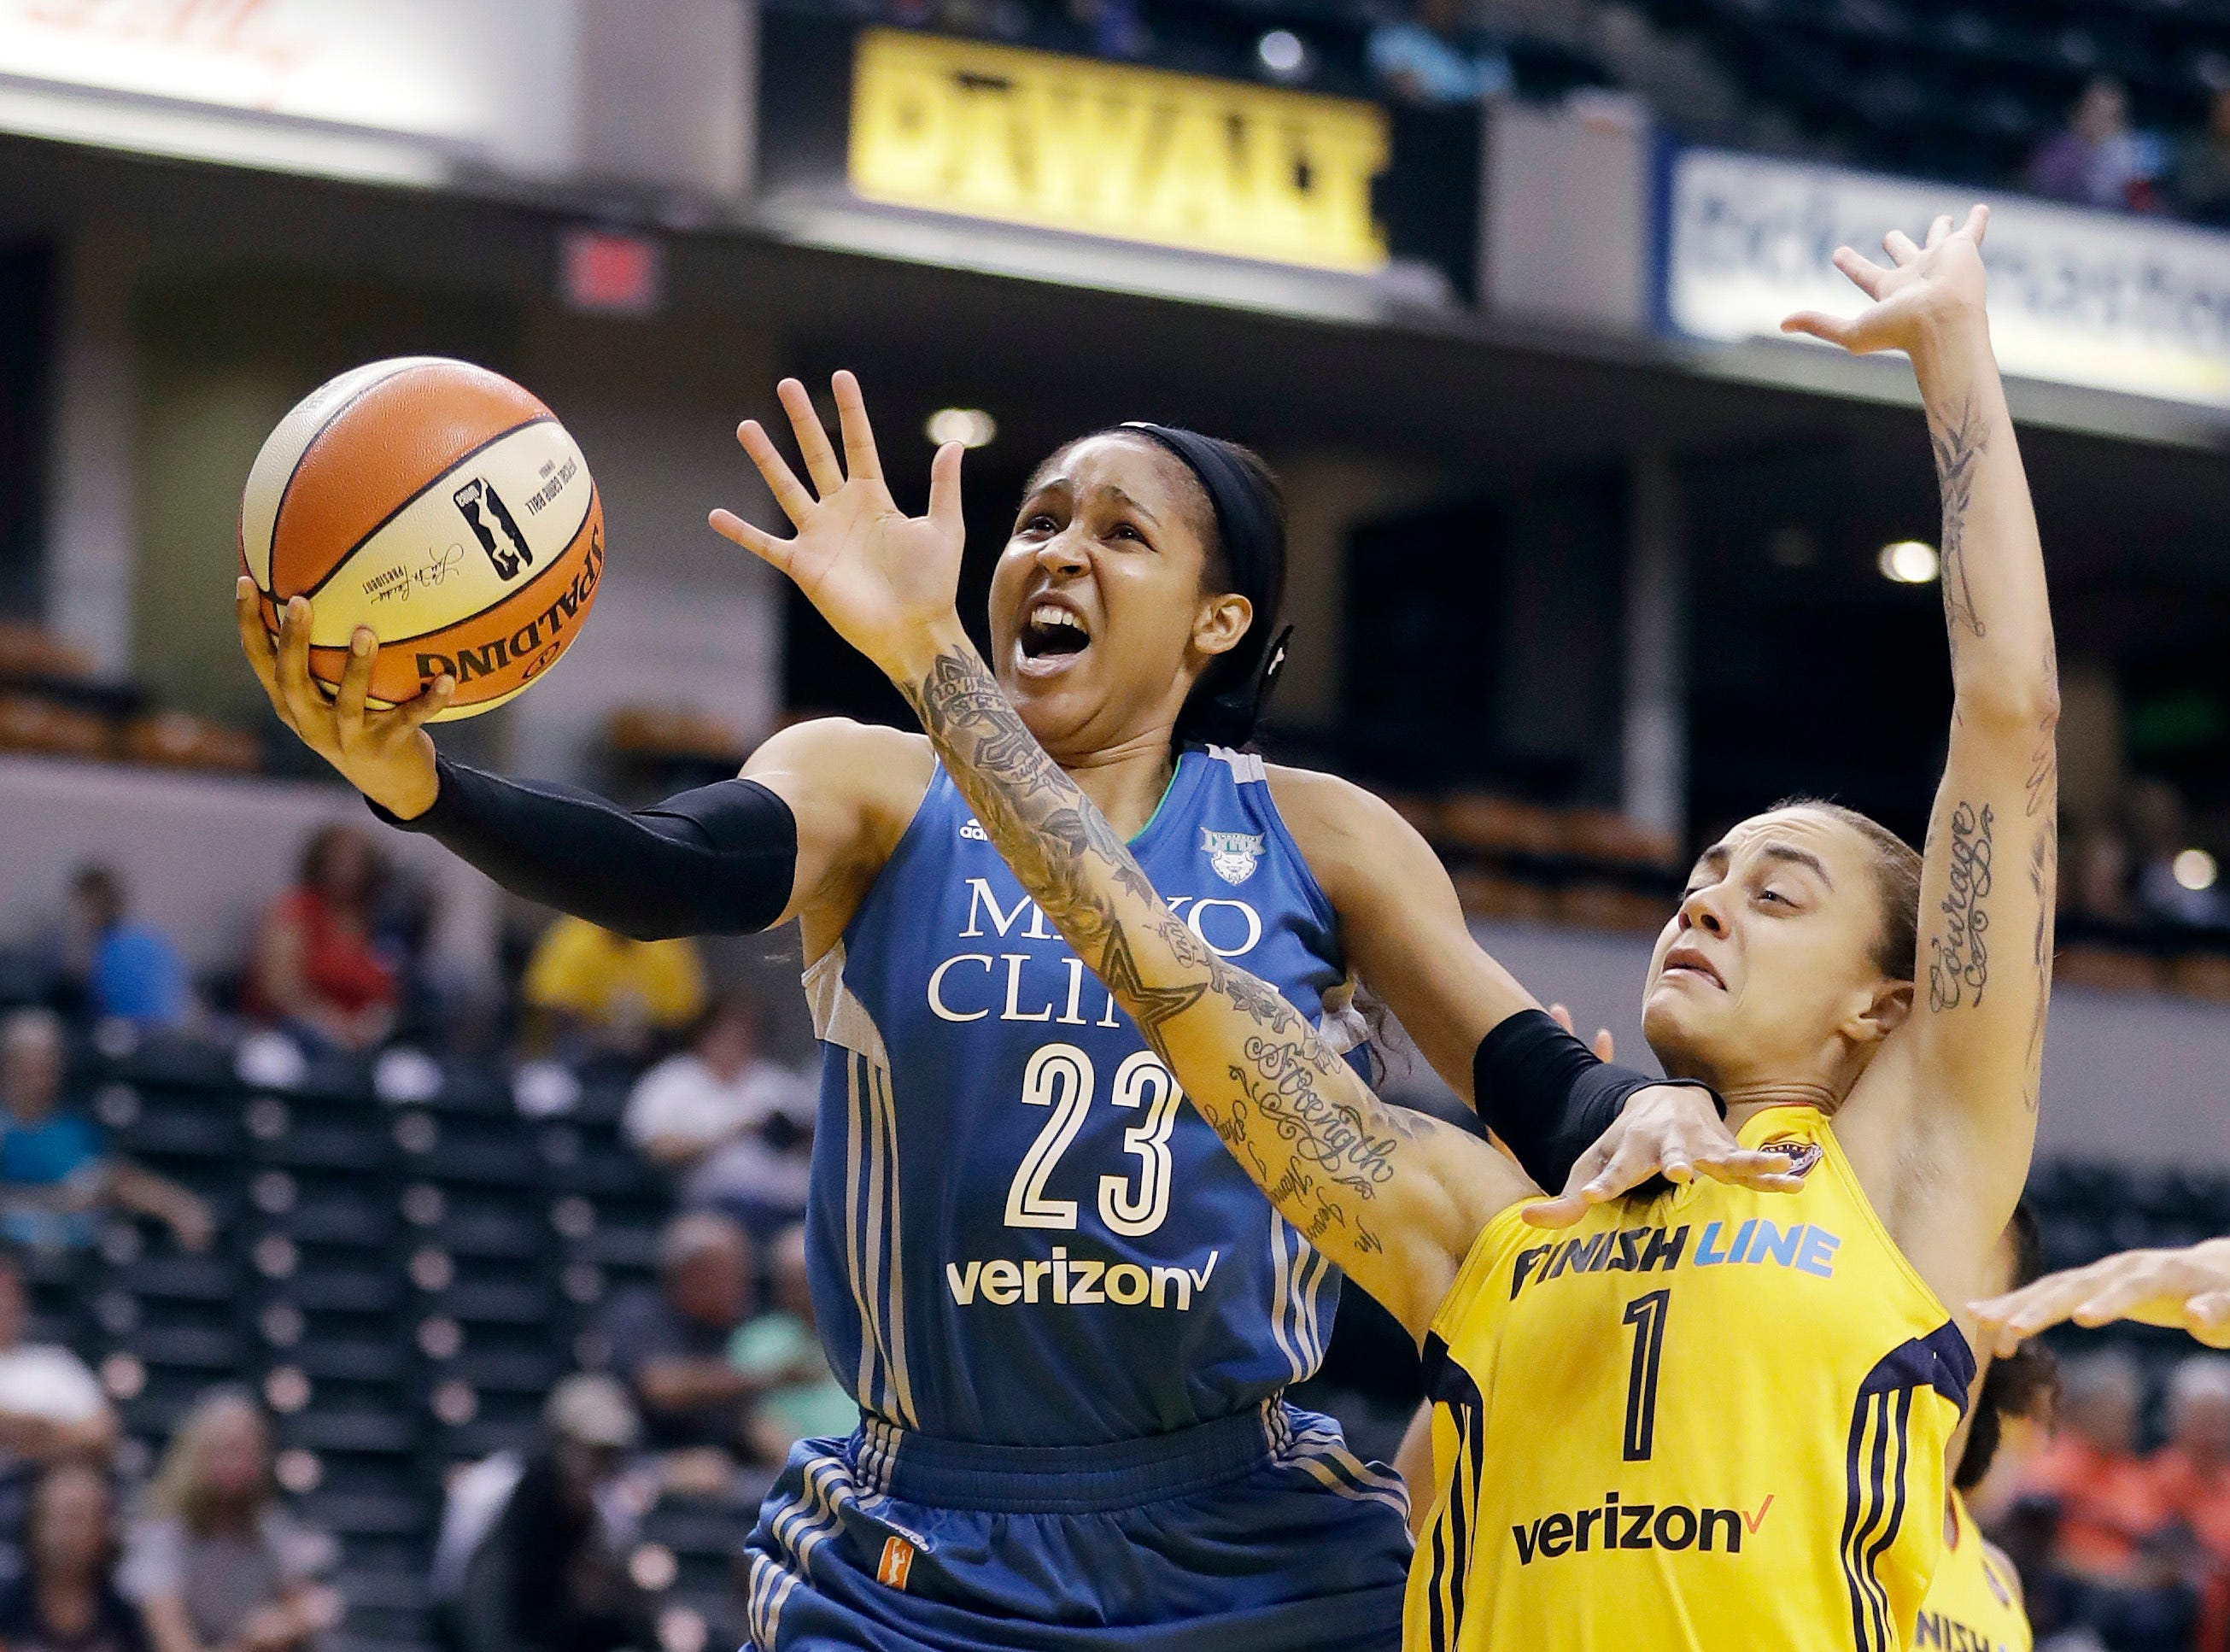 Discussion on this topic: Valerie Taylor (actor), candace-parker-2x-wnba-mvp/